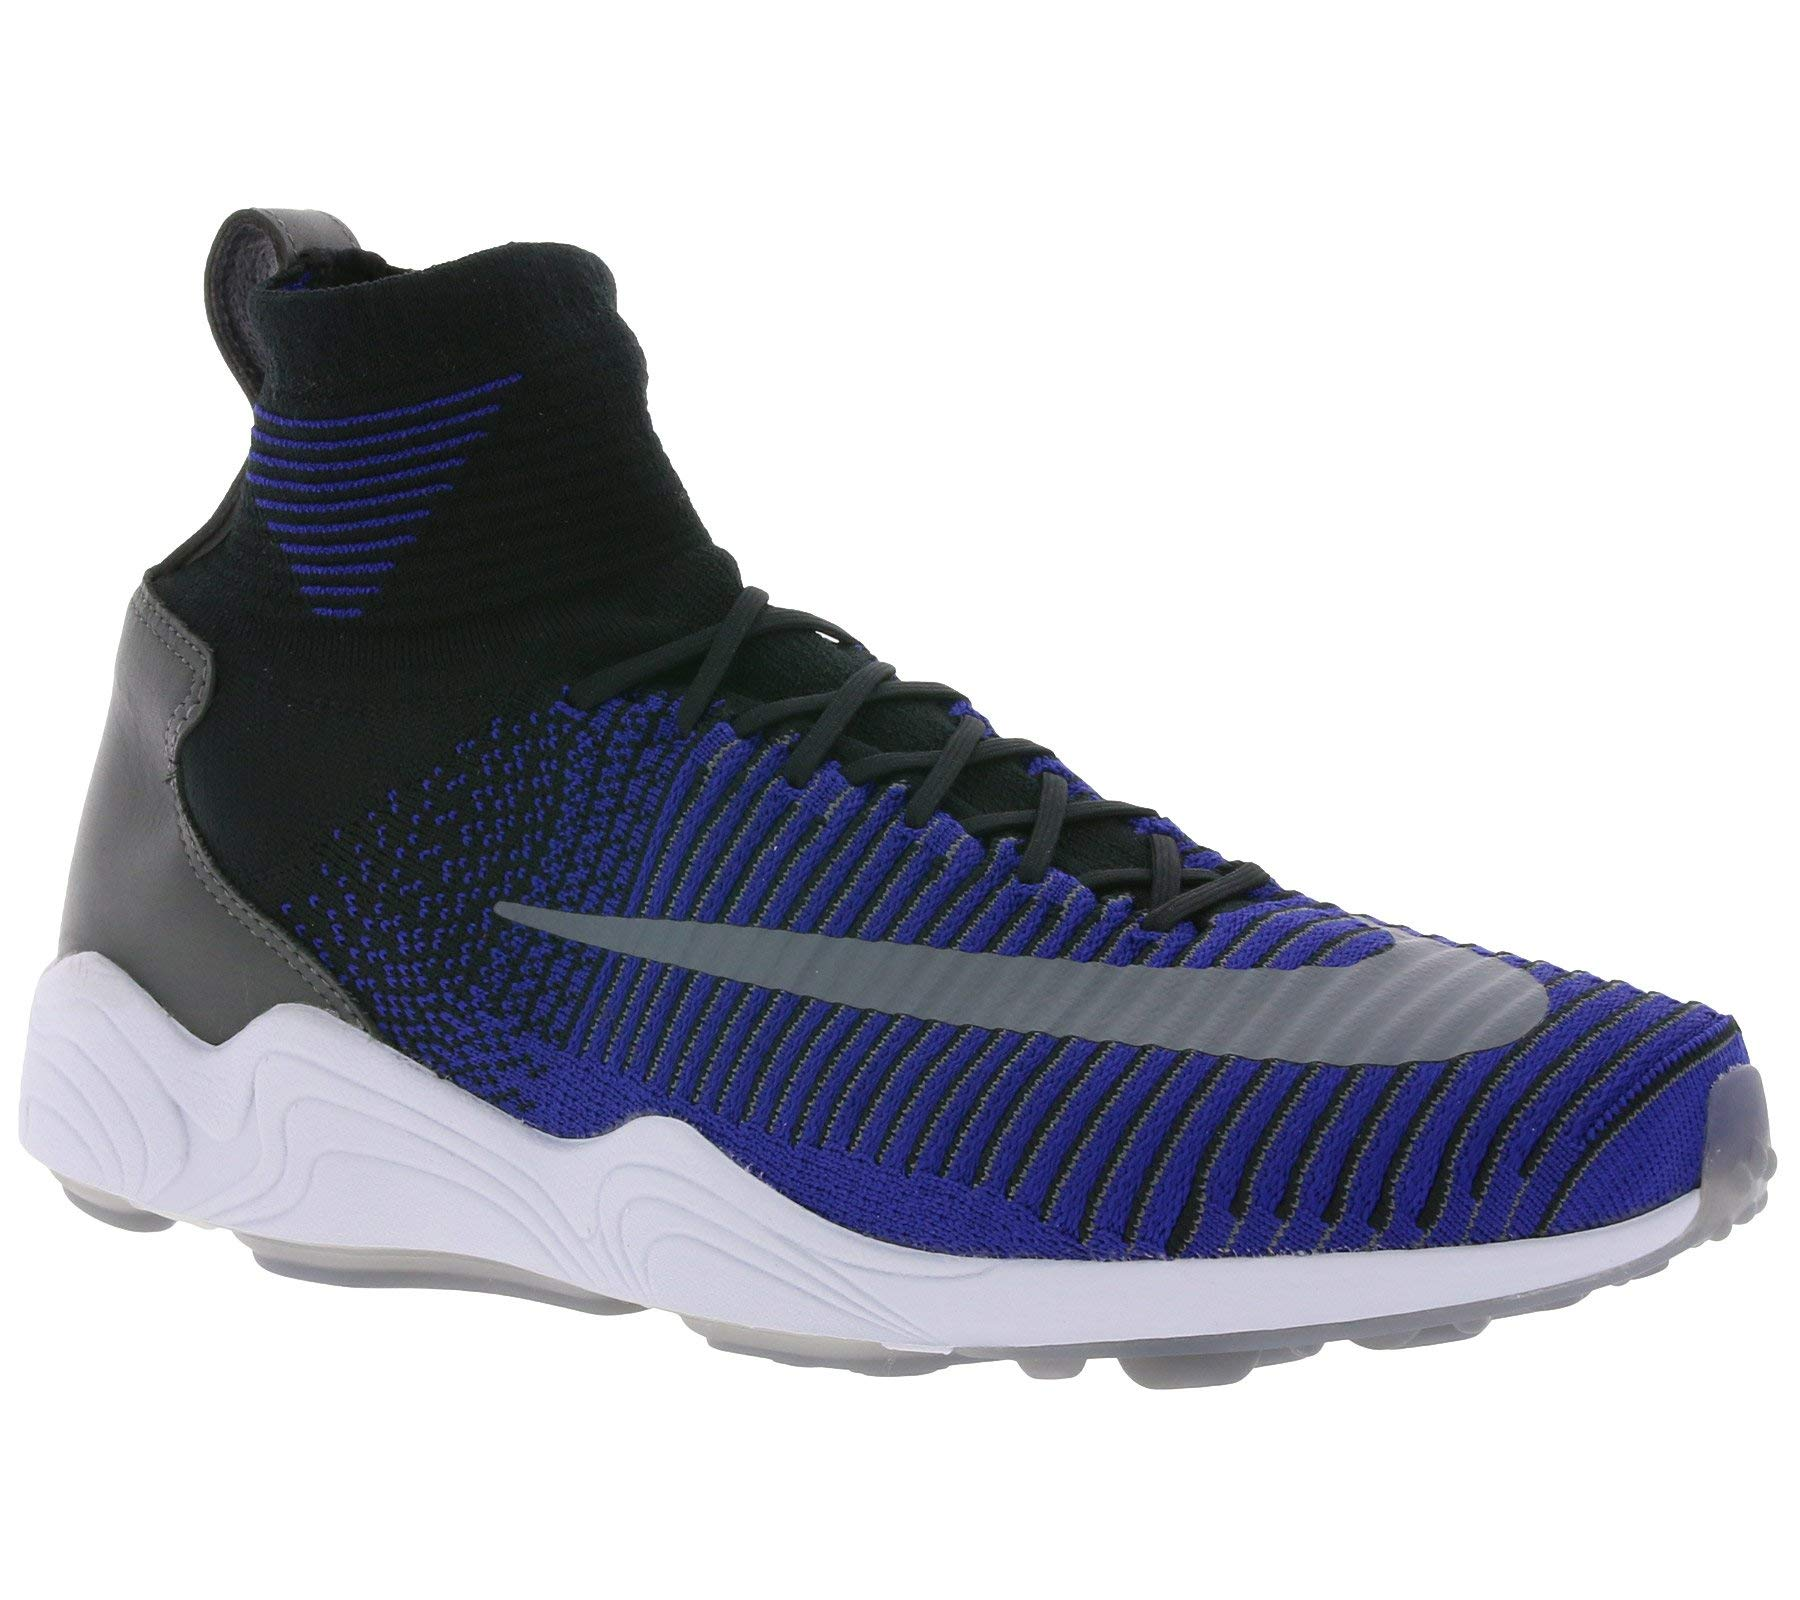 39c4a20898b8 Galleon - Nike Zoom Mercurial Xi Fk Mens Hi Top Trainers 844626 Sneakers  Shoes (UK 11 US 12 EU 46